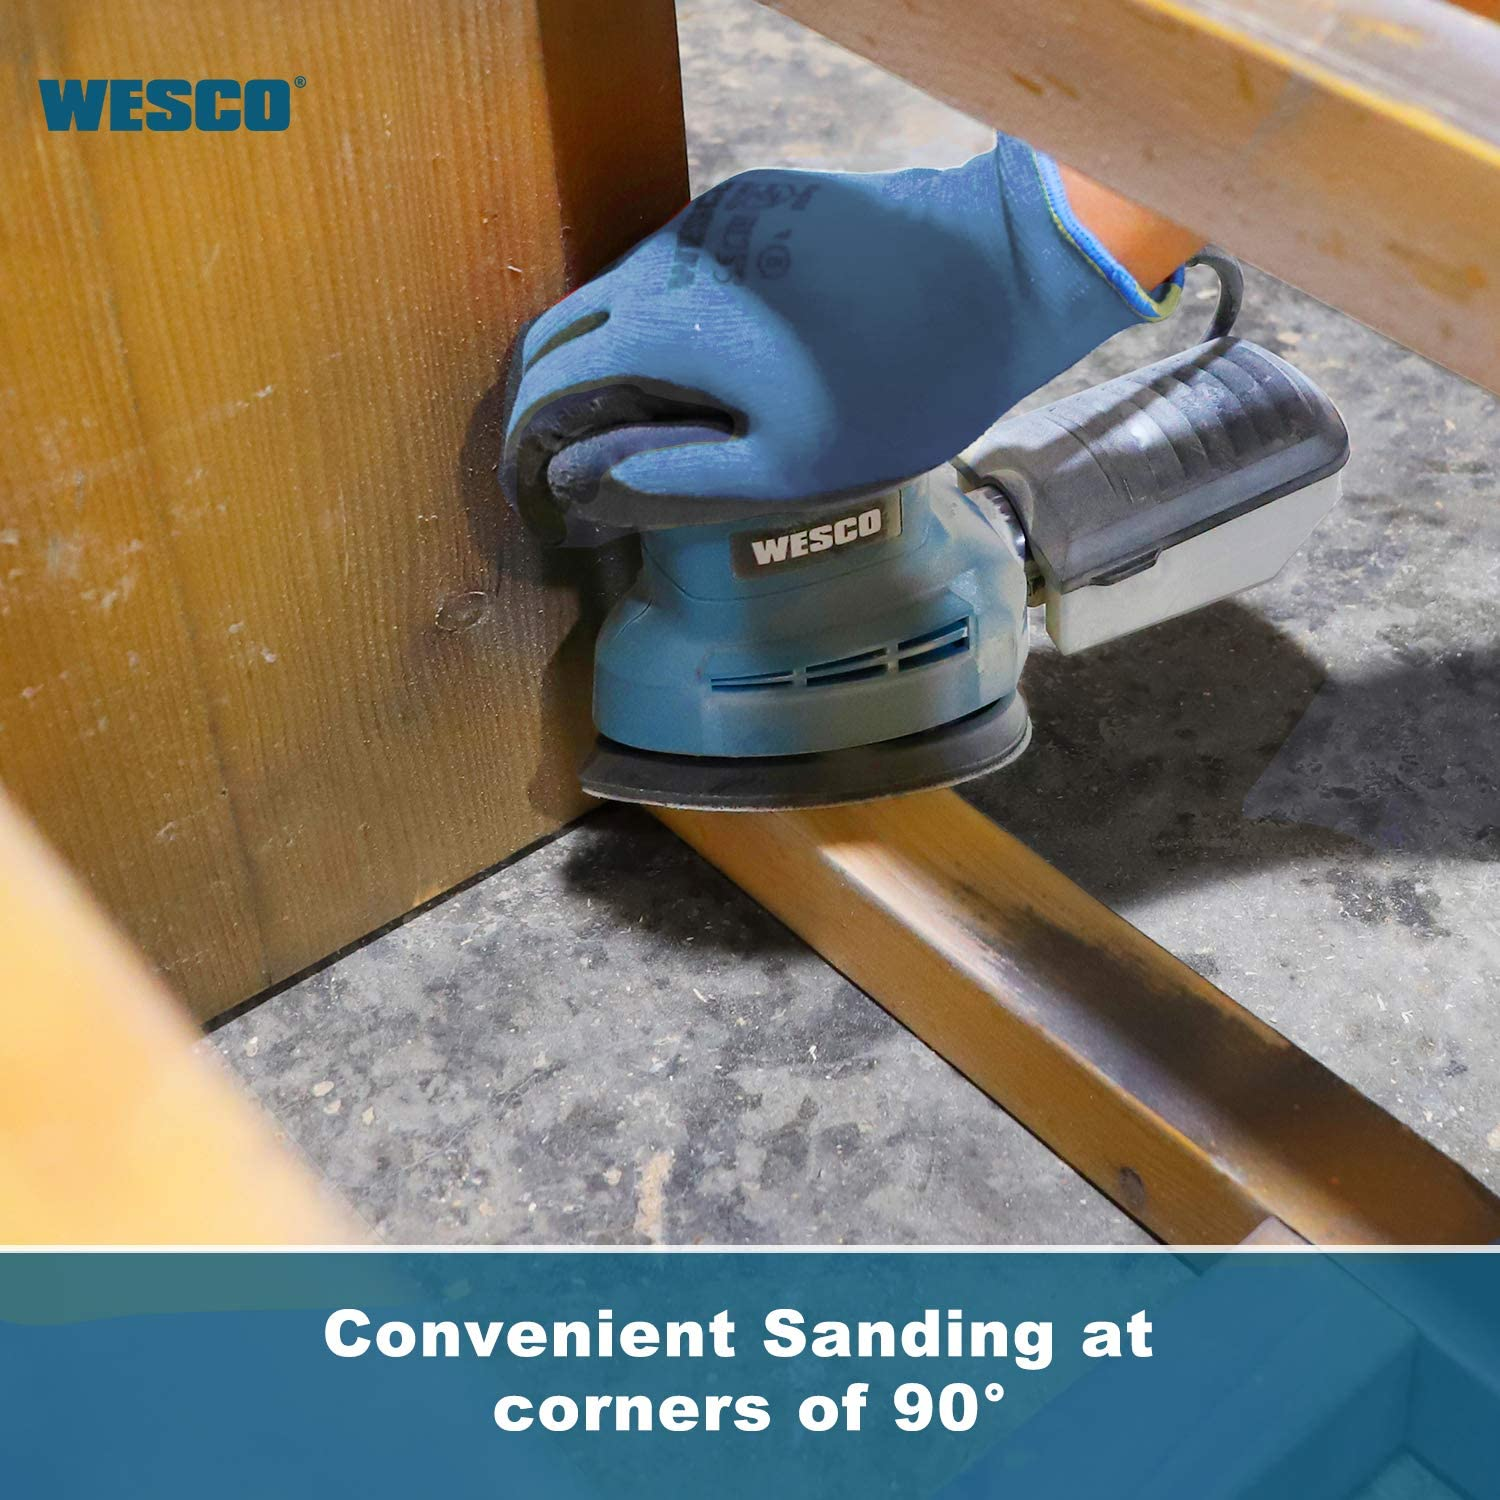 11000RPM 7 Variable Speed Palm Orbital Sander,Dust Extraction and Collection//WS4168 WESCO 240W 1//3 Sheet Sander with Aluminum Base 90 x 187 mm